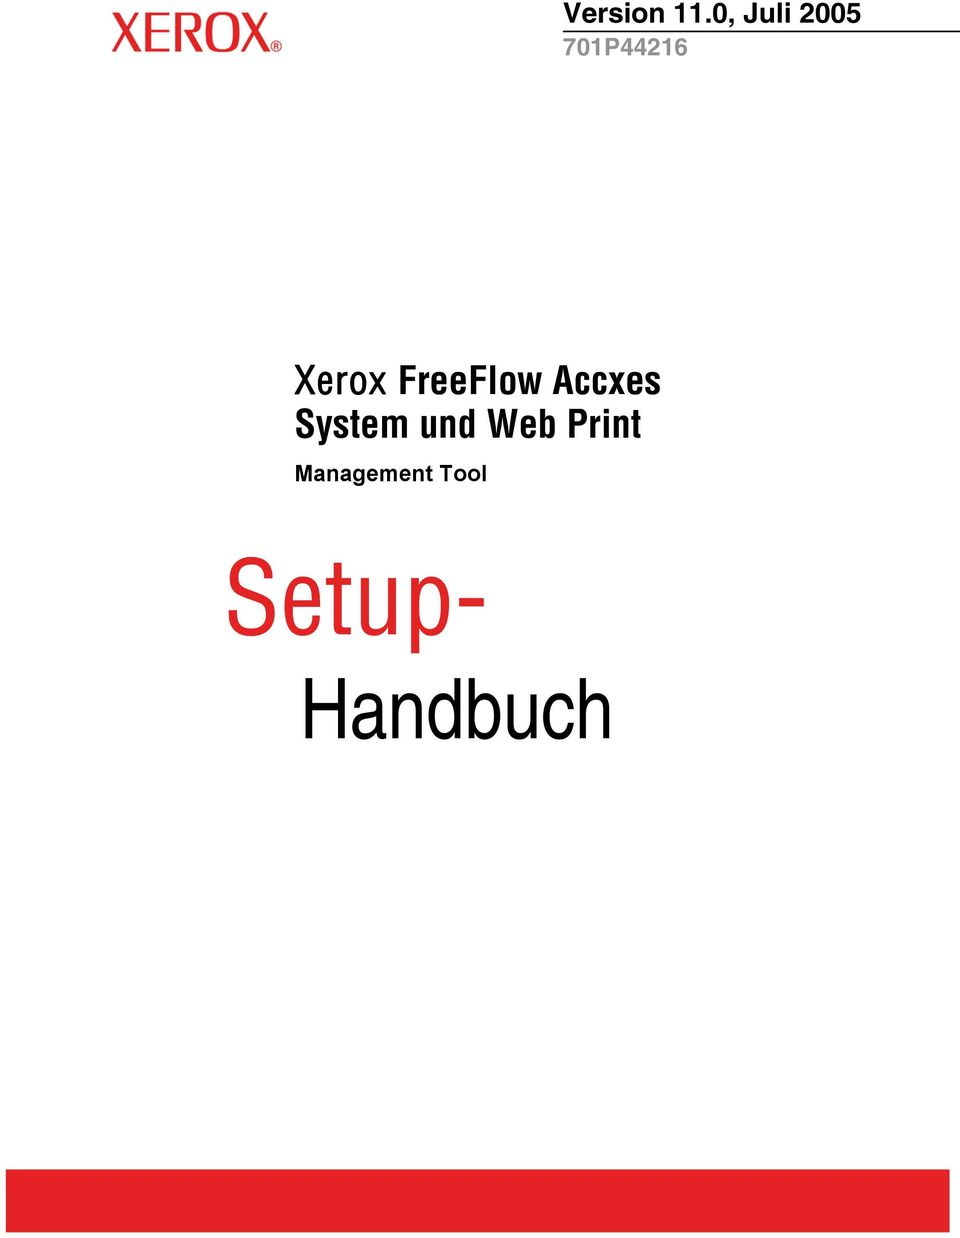 Xerox FreeFlow Accxes